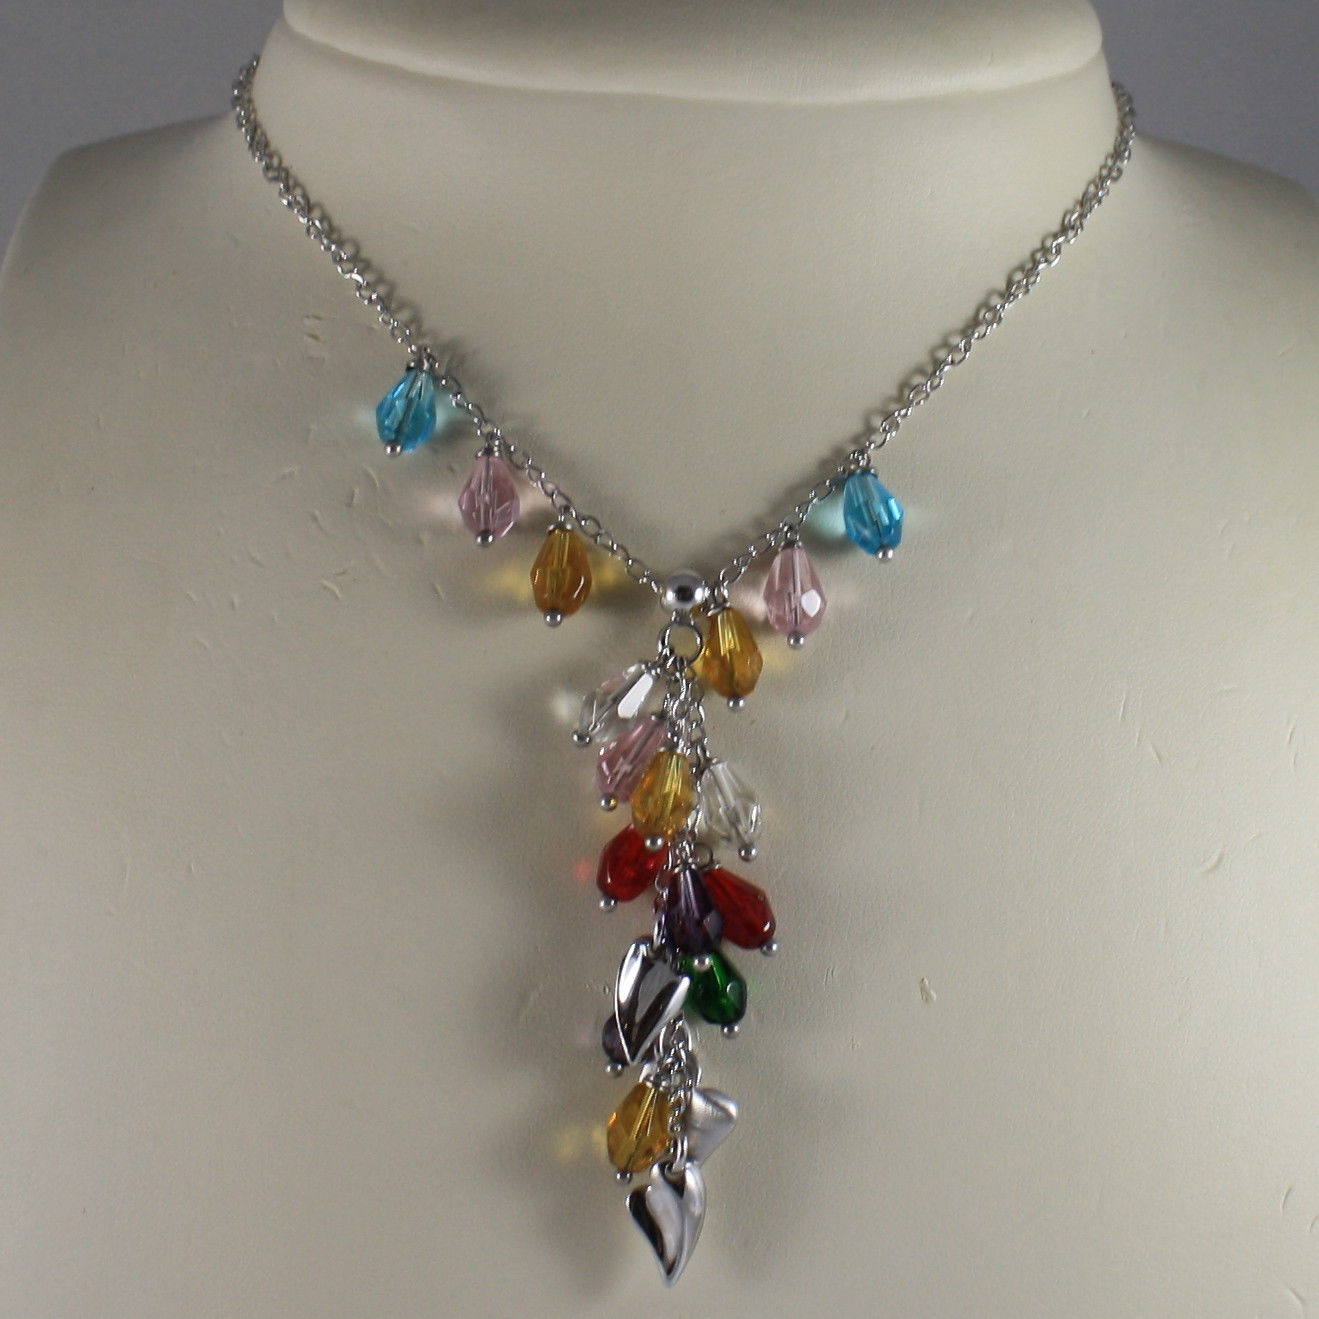 .925 SILVER RHODIUM NECKLACE WITH COLORED CRYSTALS AND HEARTS PENDANT